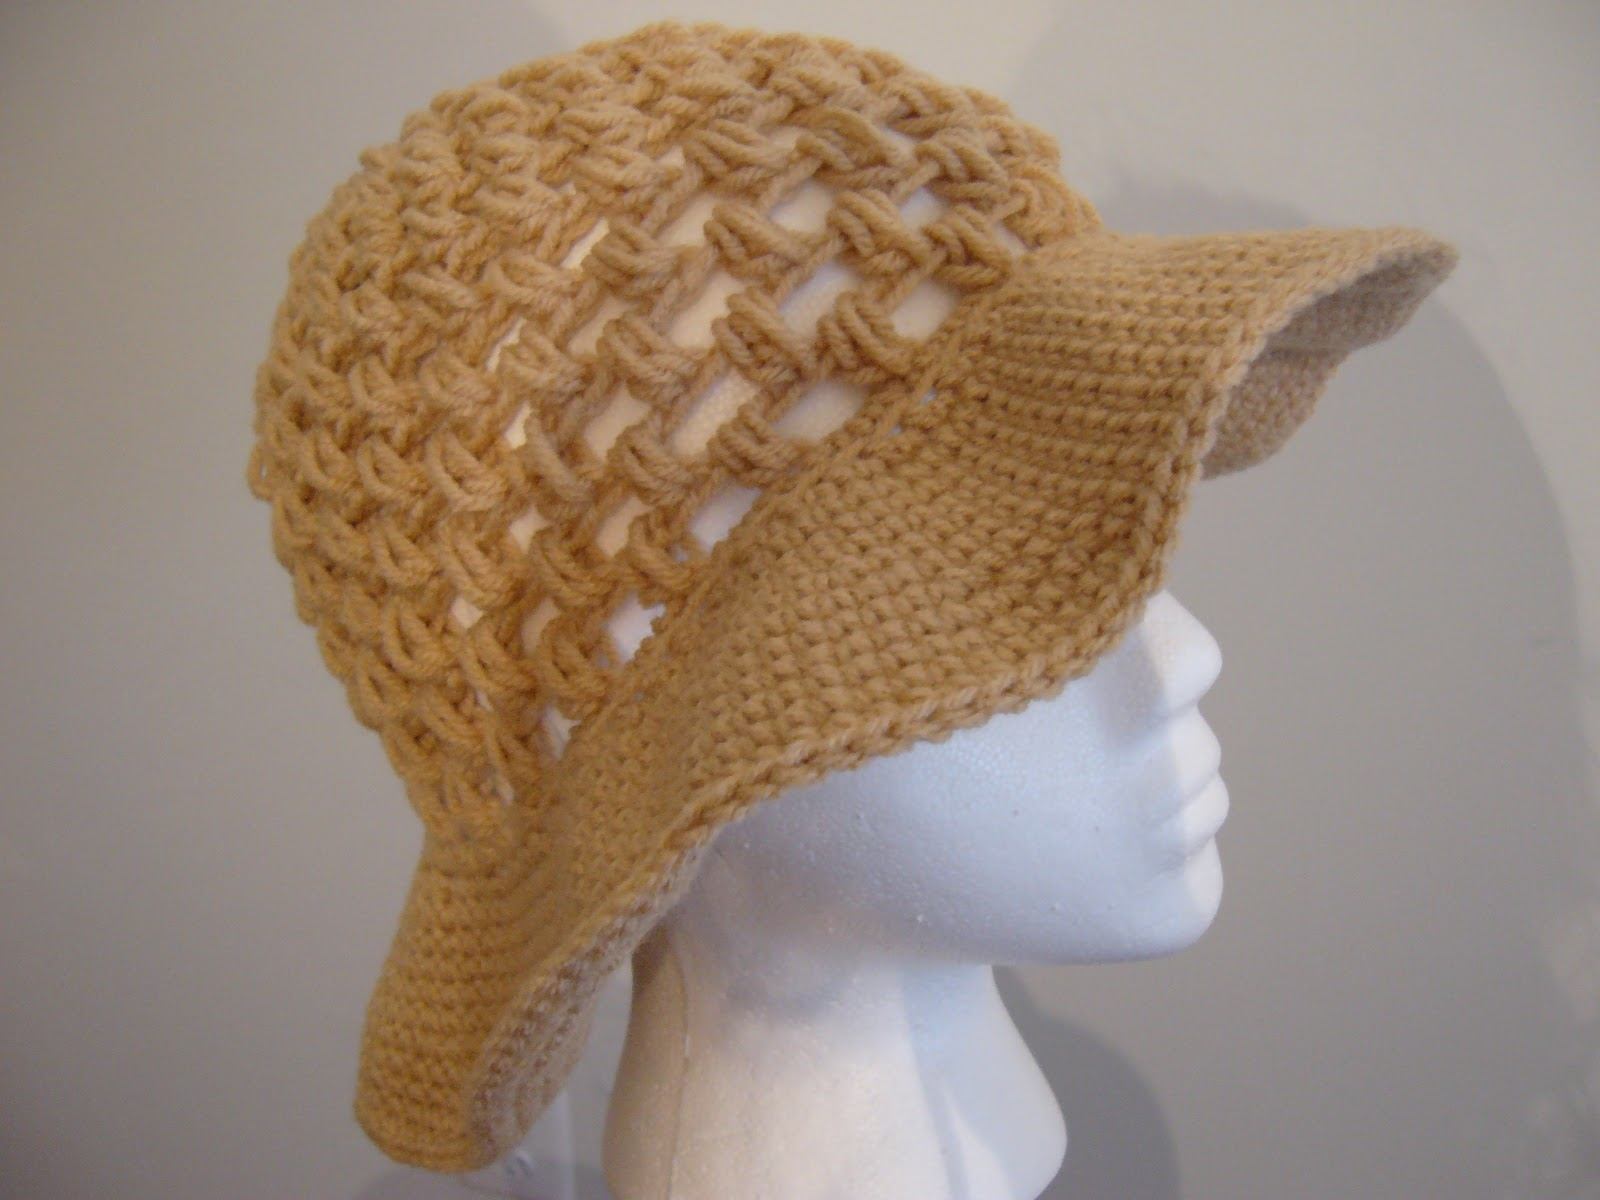 Crocheting Hats : Darling Crocheted Ruffled Sunhat. Crochet Garden. Boutique